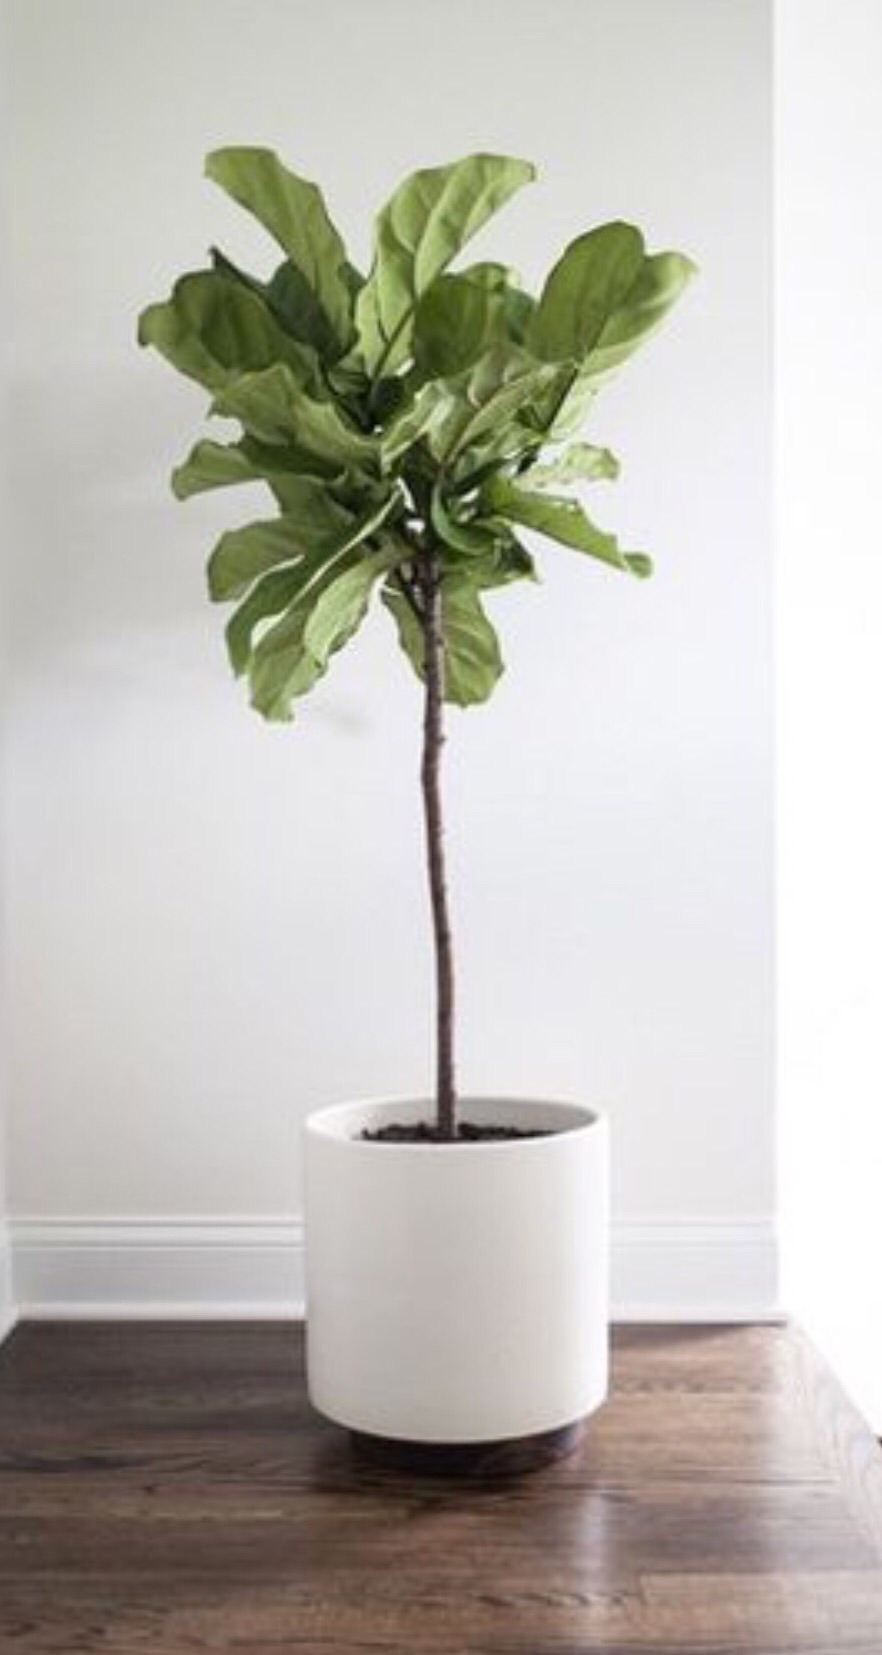 Fiddle leaf fig tree.  The minimal pot is so beautiful, such a chic and modern update to a terra cotta or woven pot.